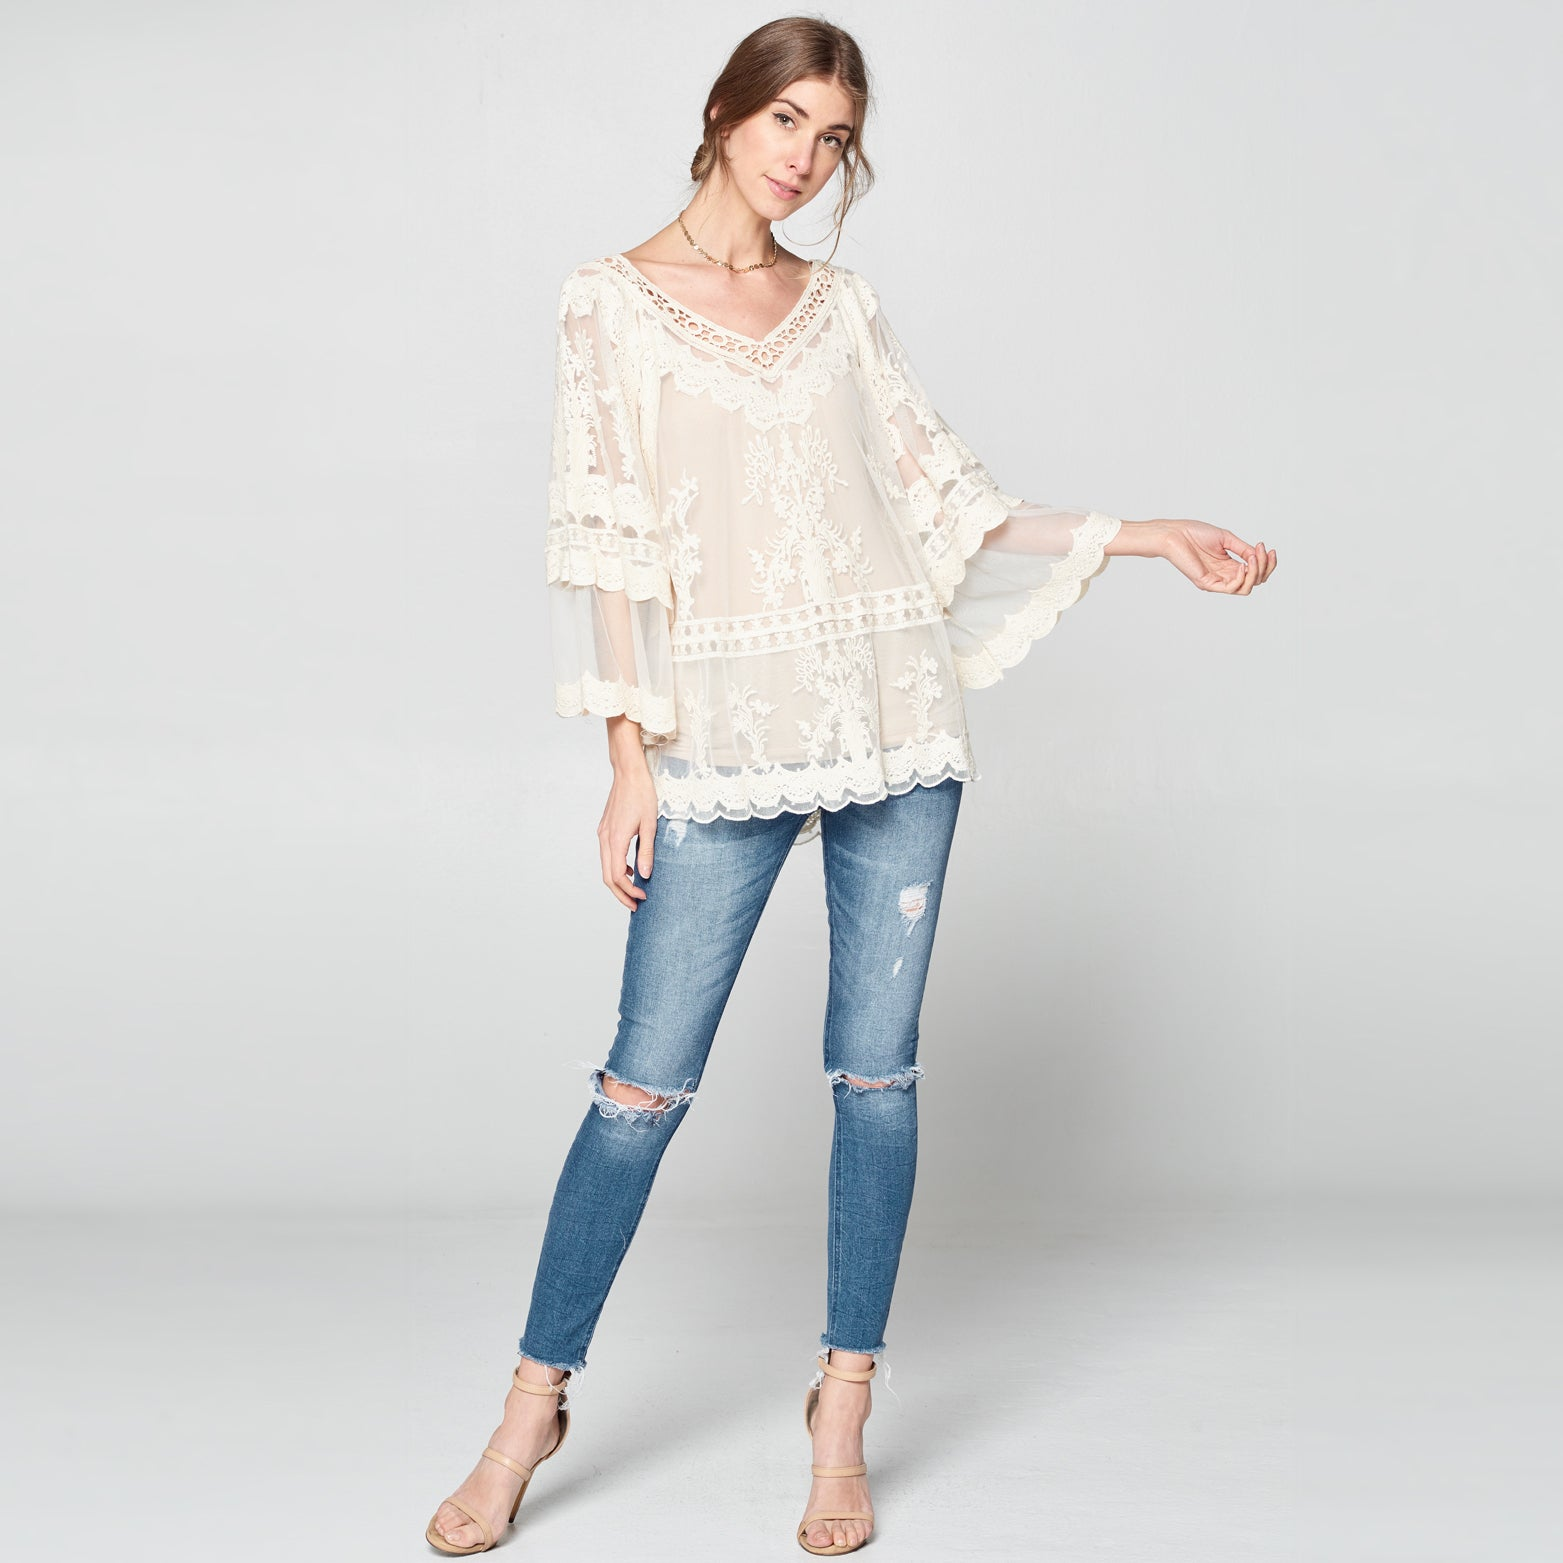 Embroidered Fleur Lace Top - Love, Kuza